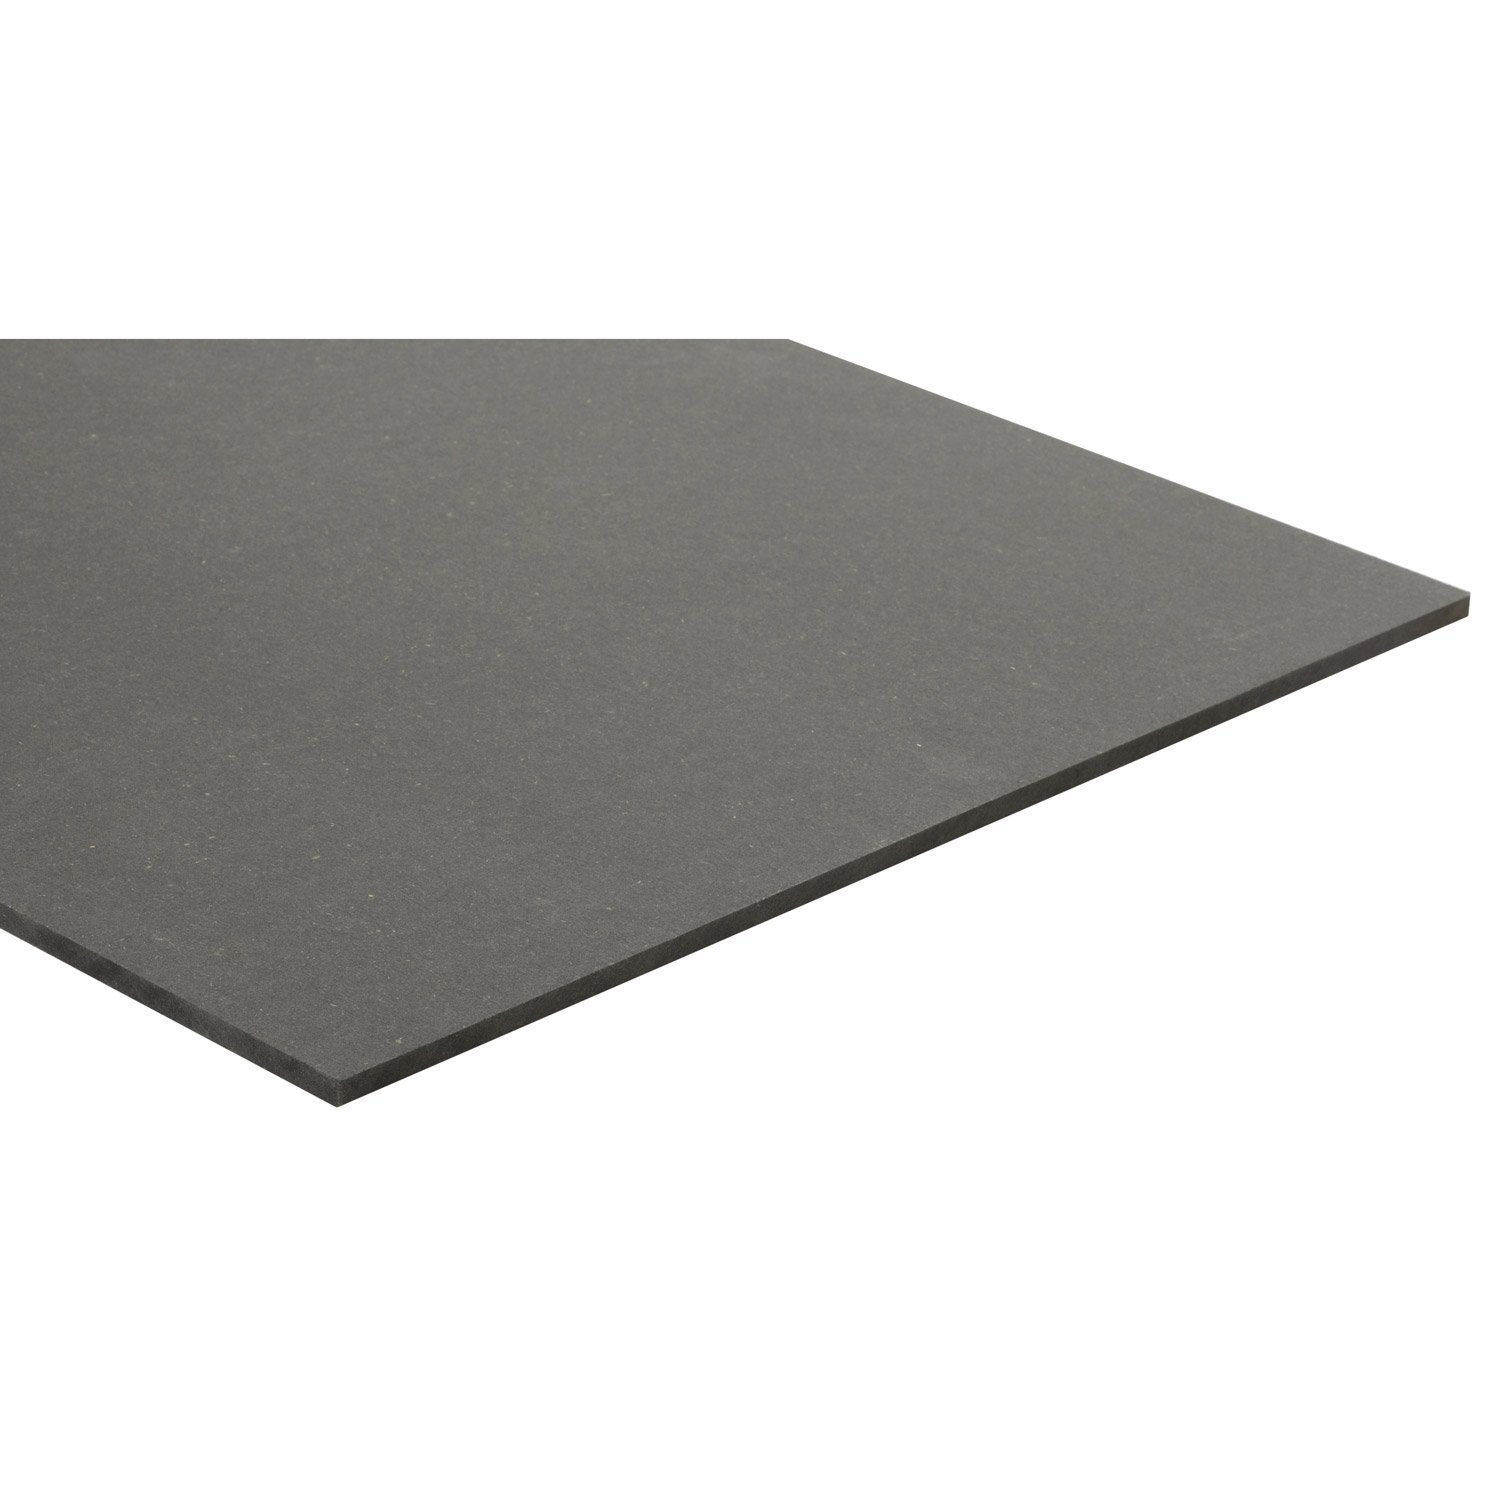 Panneau mdf m dium teint e masse gris anthracite for Portillon pvc gris anthracite